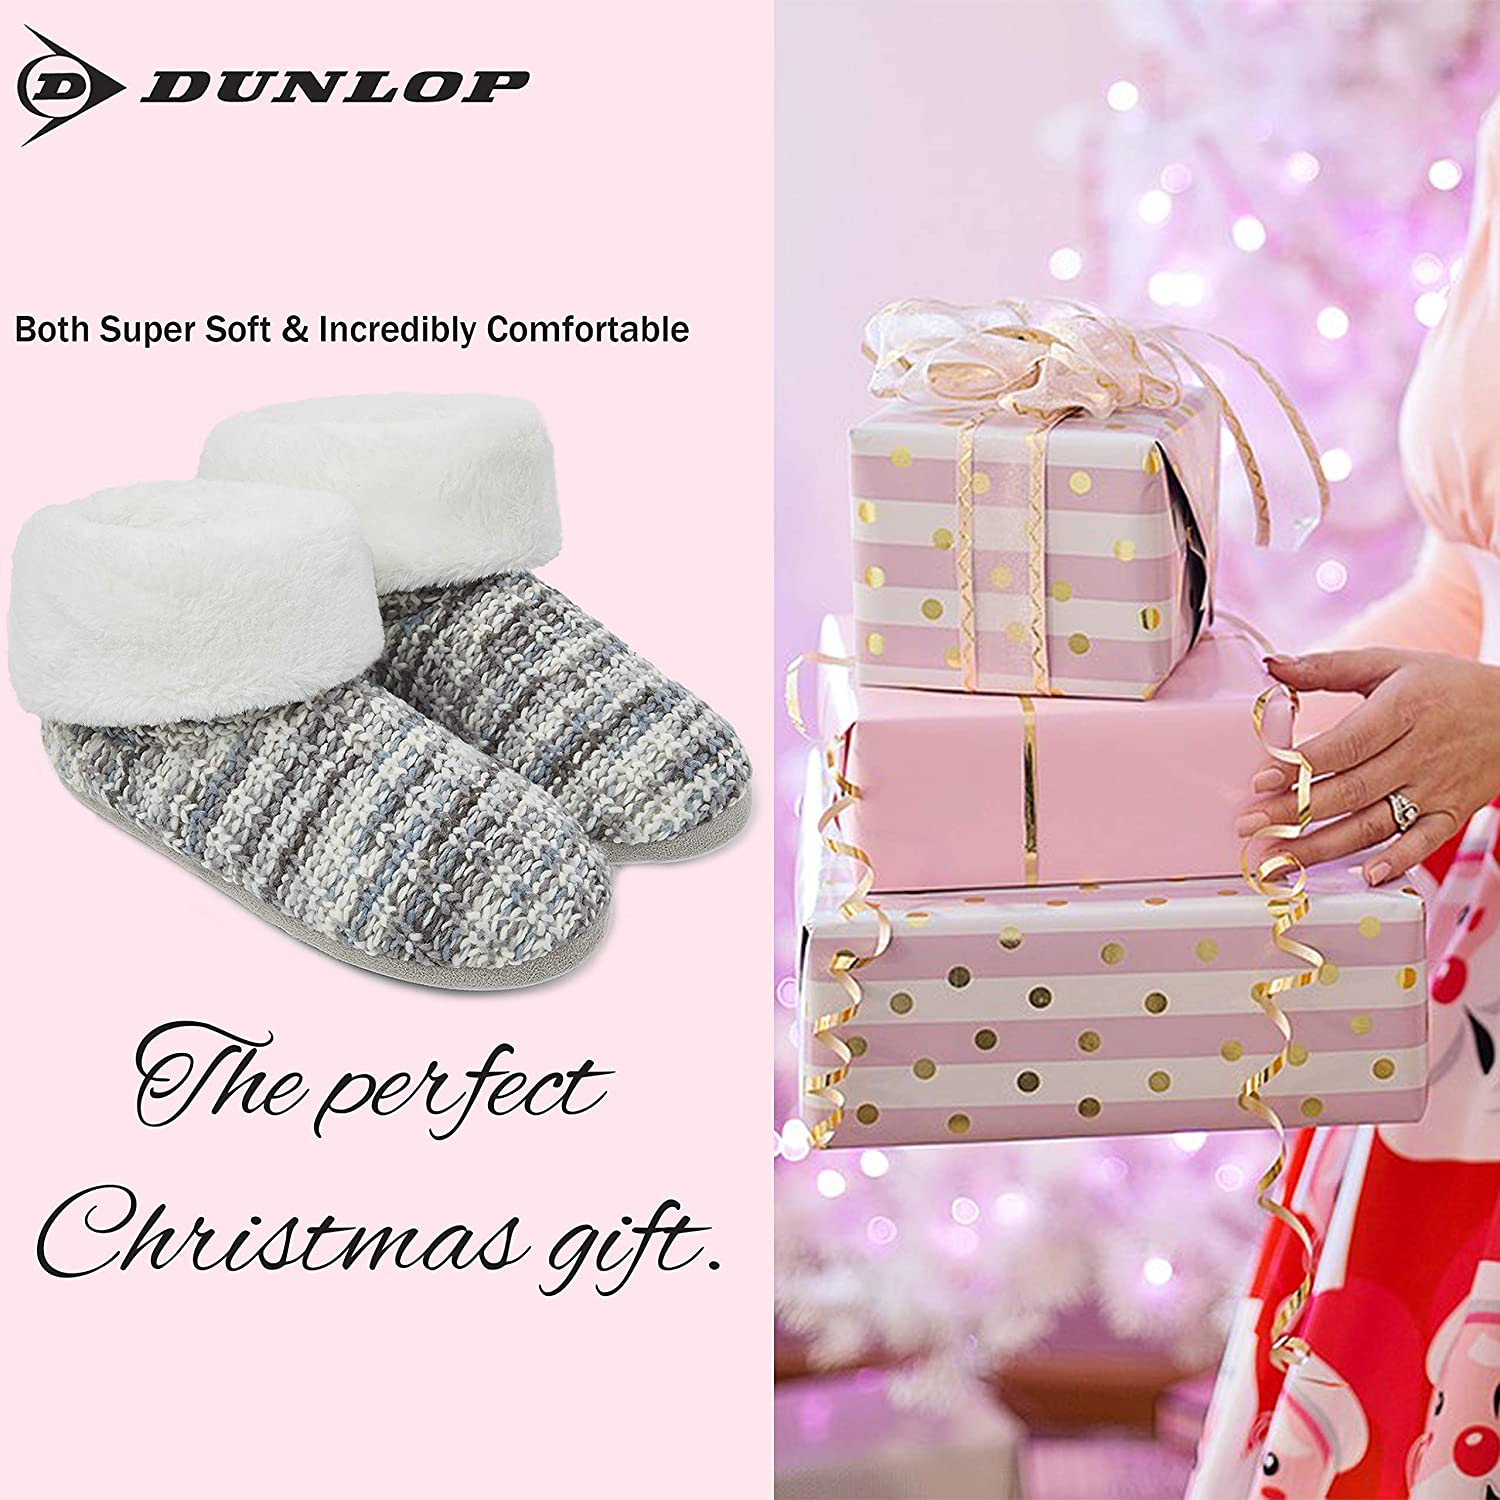 Knitted Slippers with Pom Poms and Fluffy Lining Ladies Quality Ankle Slippers Memory Foam Boots Indoor Outdoor with Non Slip Sole Dunlop Ladies Slippers Comfortable Booties for Women